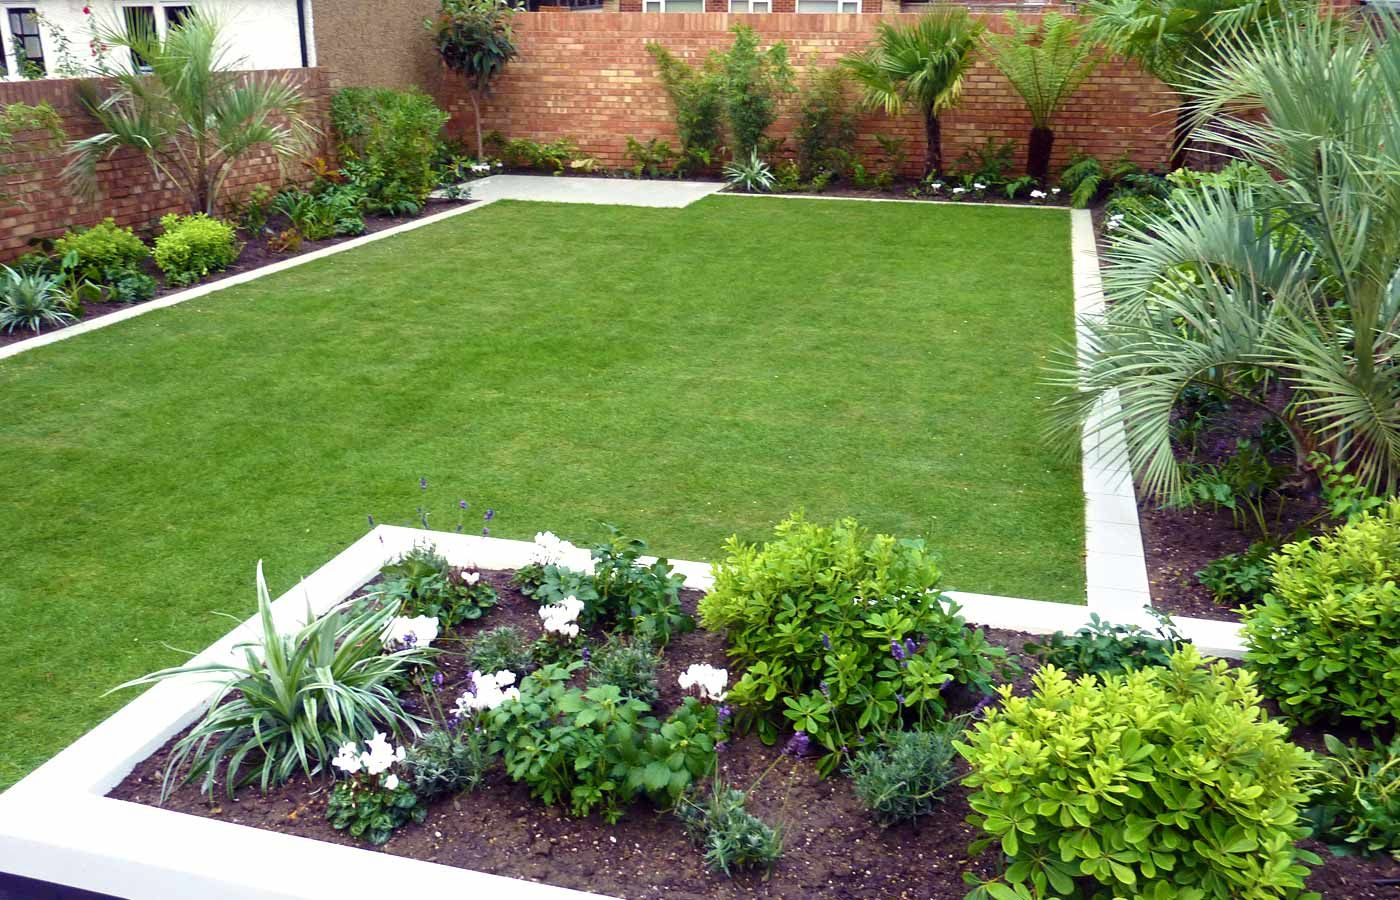 Superieur Simple Backyard Outdoor Garden With Large Green Grass And Some Palm Trees  Decorating Also Brick Fence For Modern Garden Design Ideas